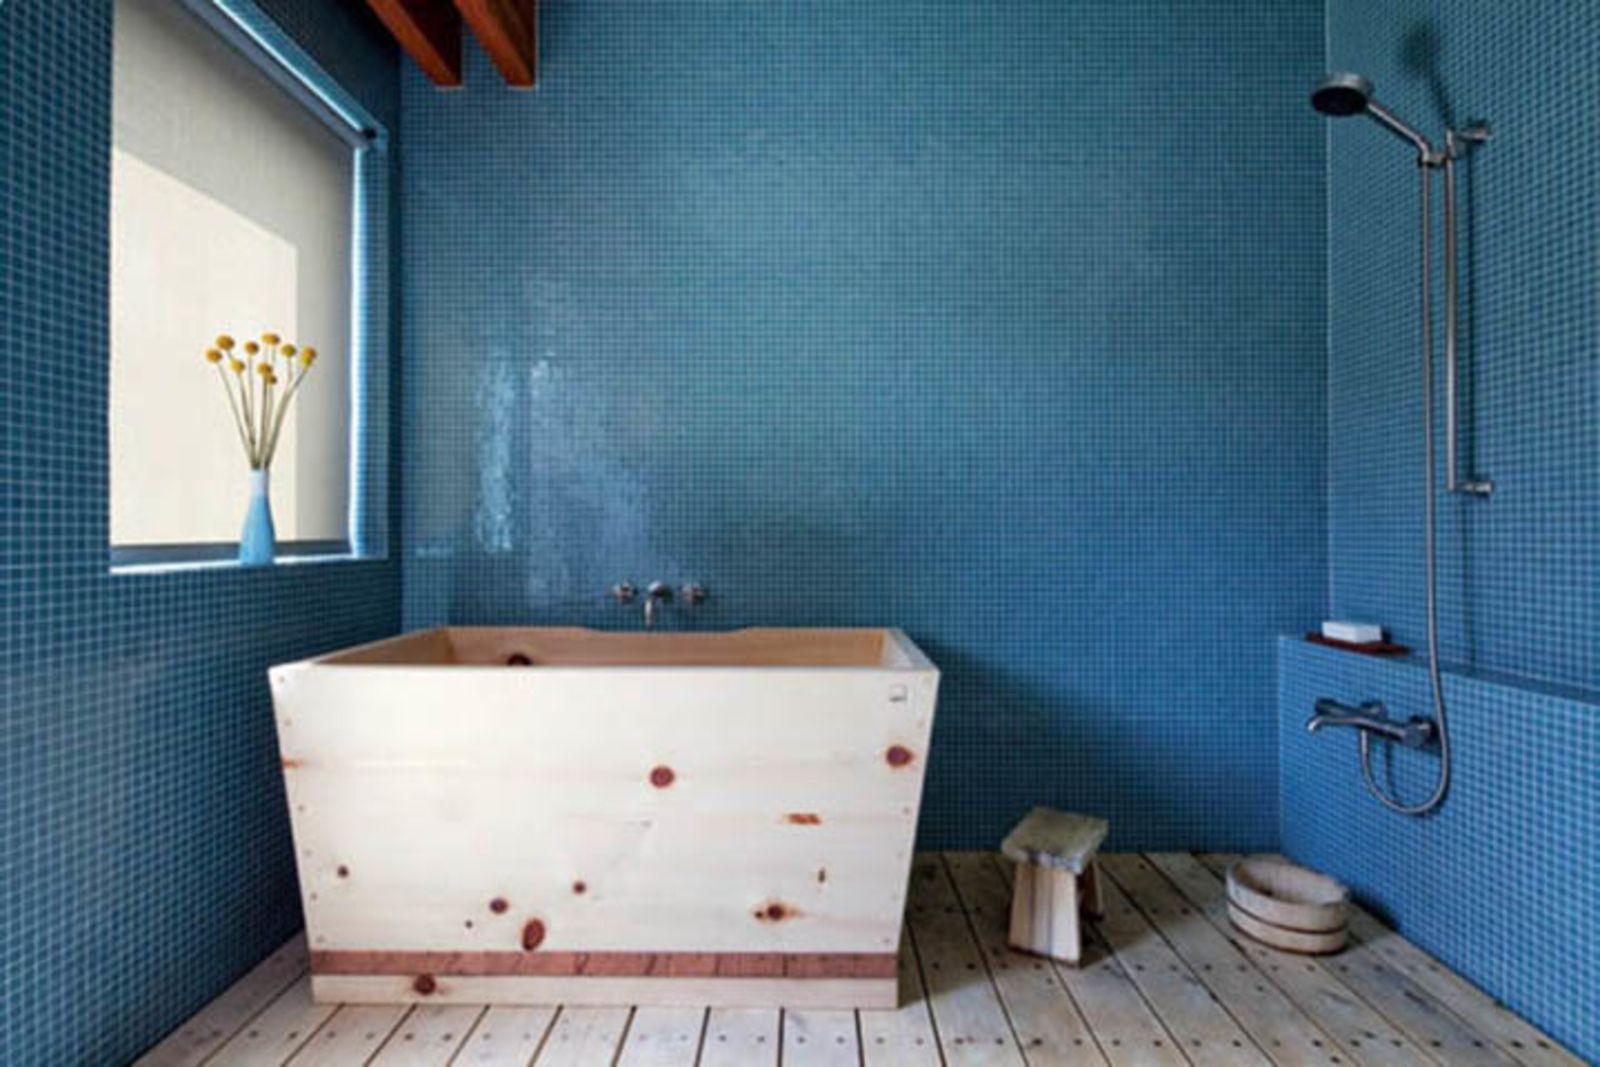 Japanese Soaking Tubs | Venice california, Tubs and Stools